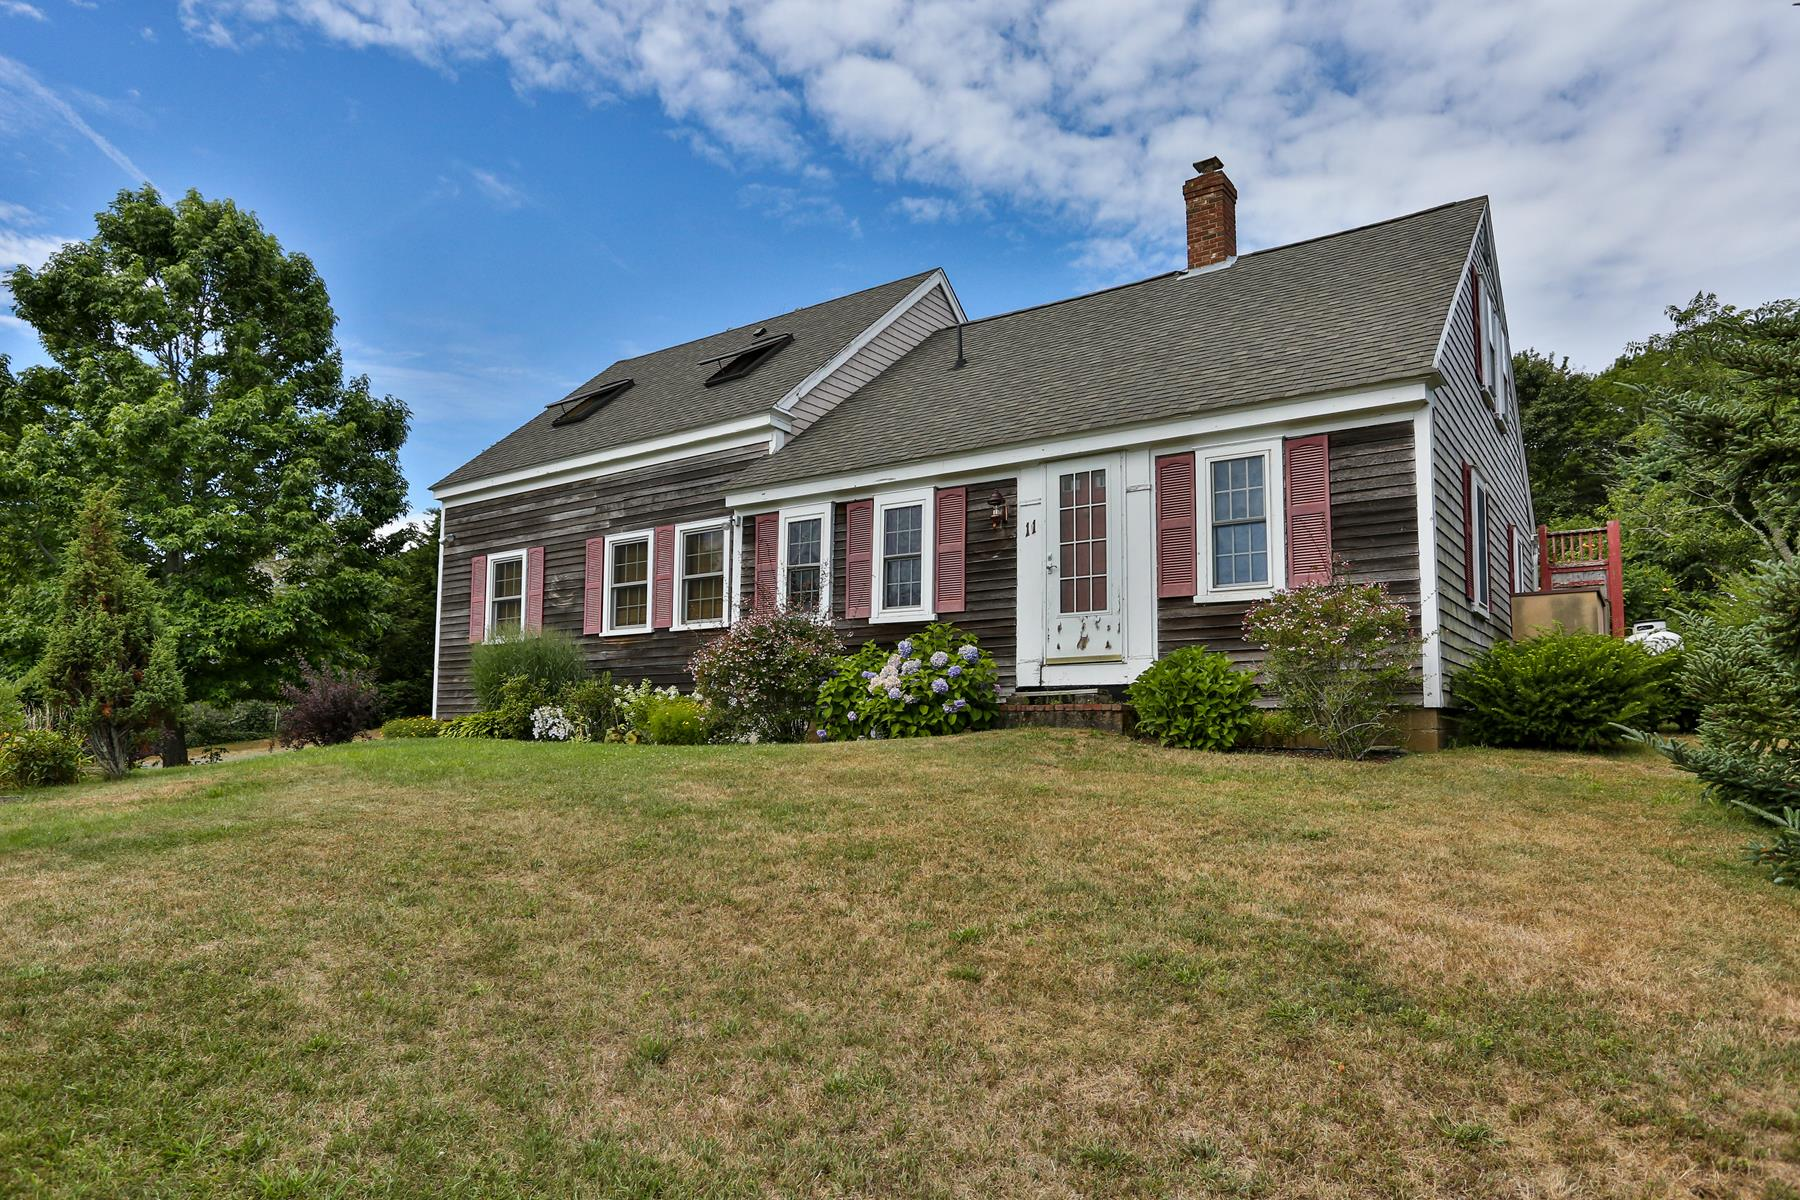 Single Family Homes for Active at Charming Cape 11 Francis Road North Truro, Massachusetts 02652 United States